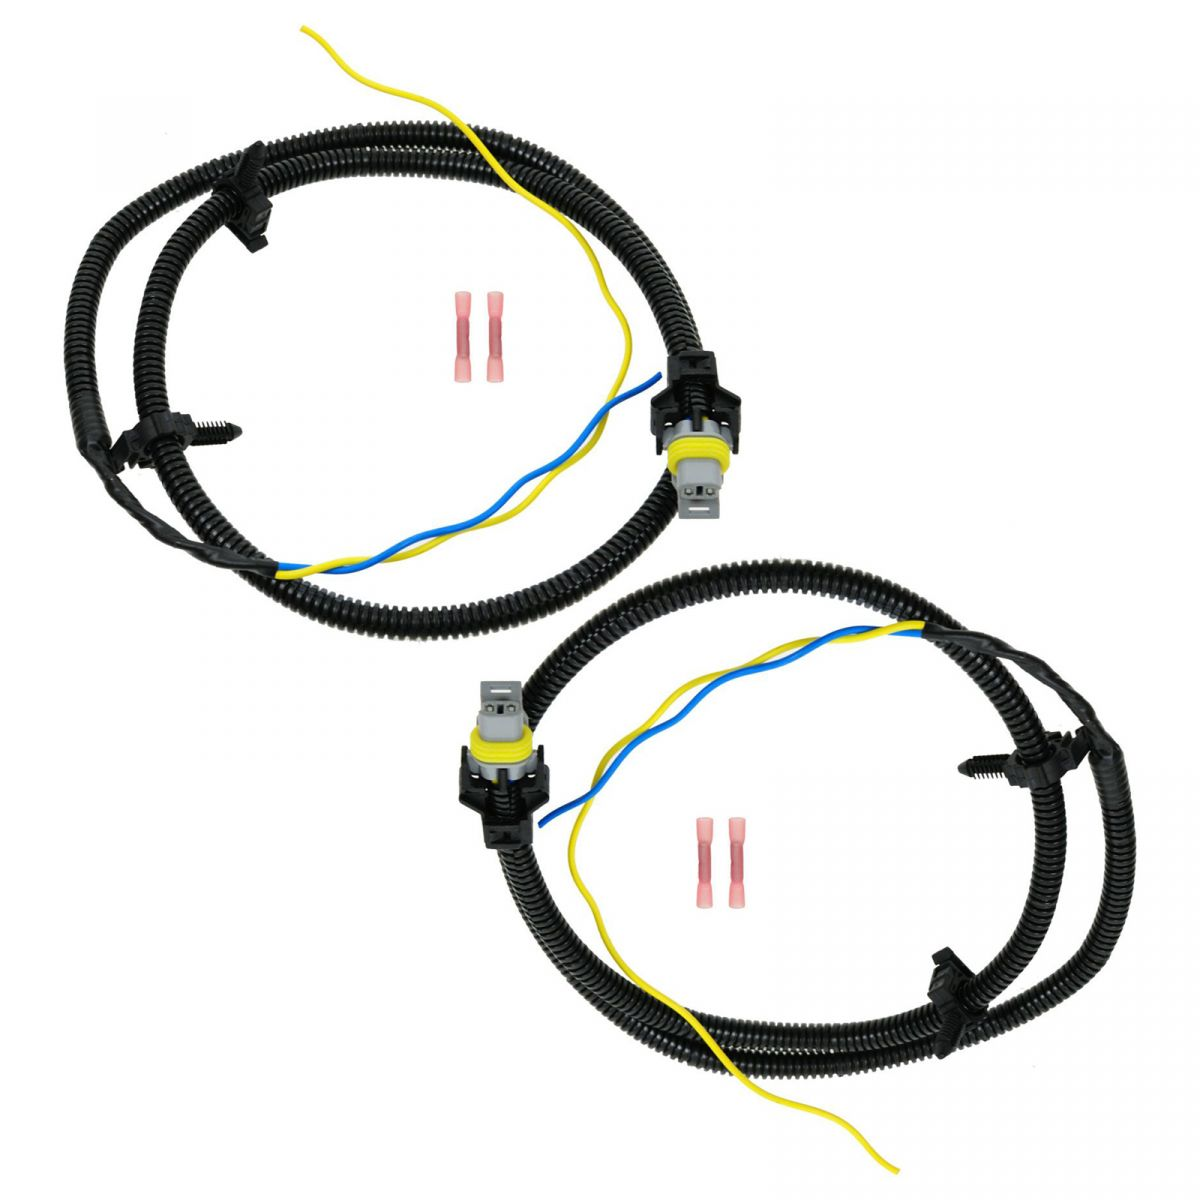 Dorman Abs Harness Front Pair For 95 05 Sunfire Chevy